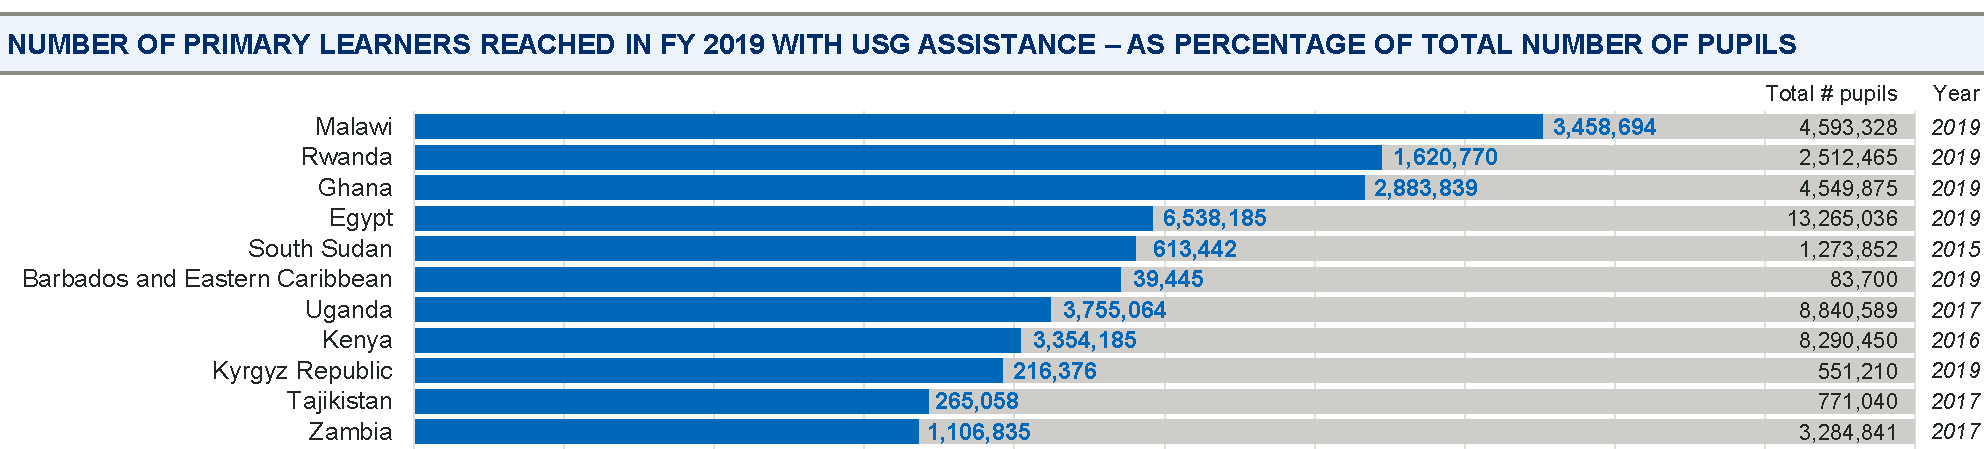 Number of primary learners reached in 2019 with USG assistance